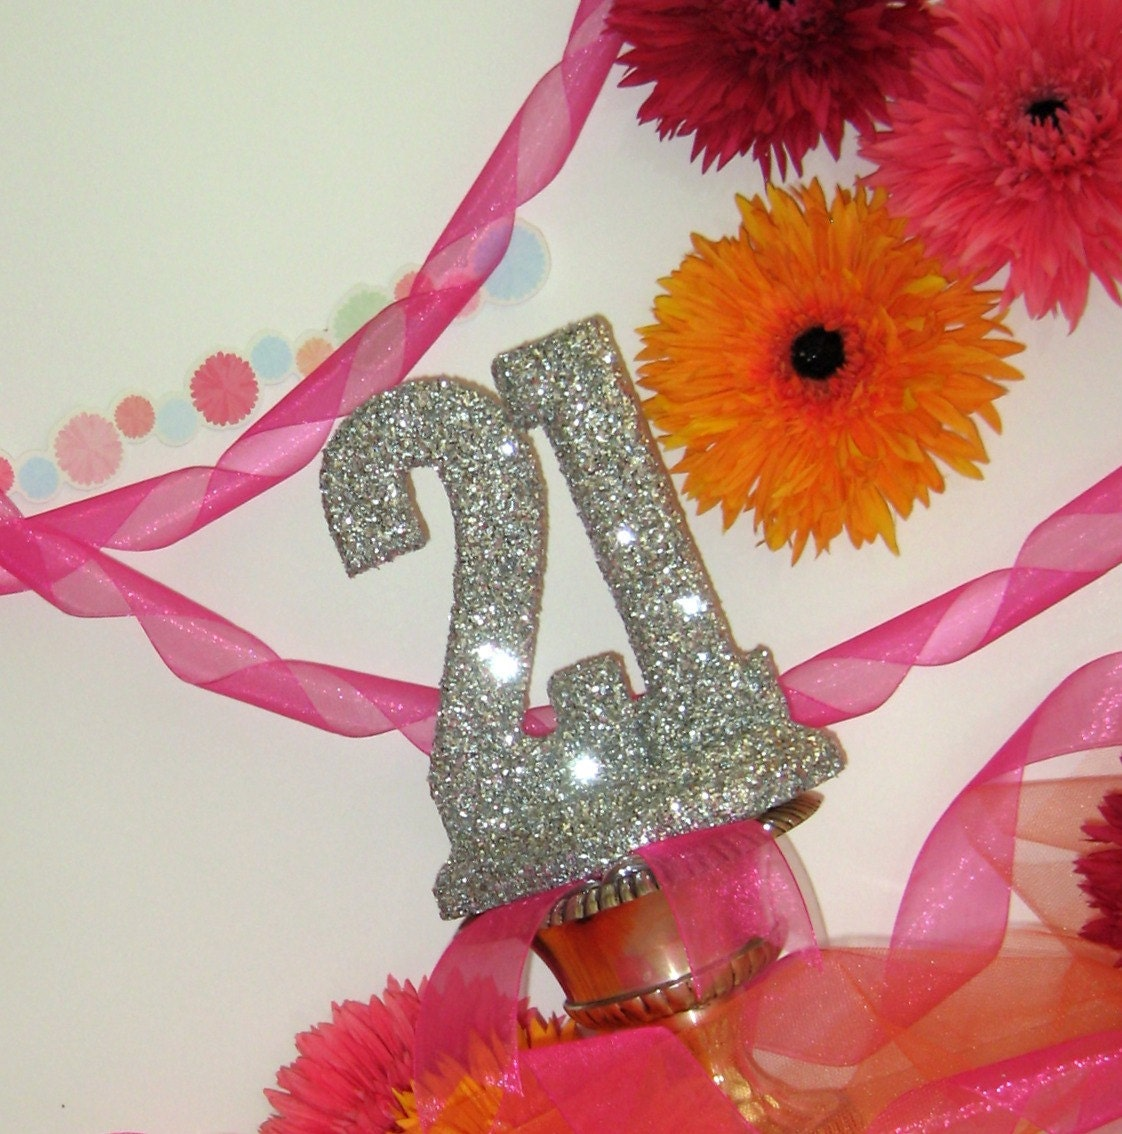 21st birthday cake topper decorations by ohonefineday on etsy for 21st birthday decoration ideas